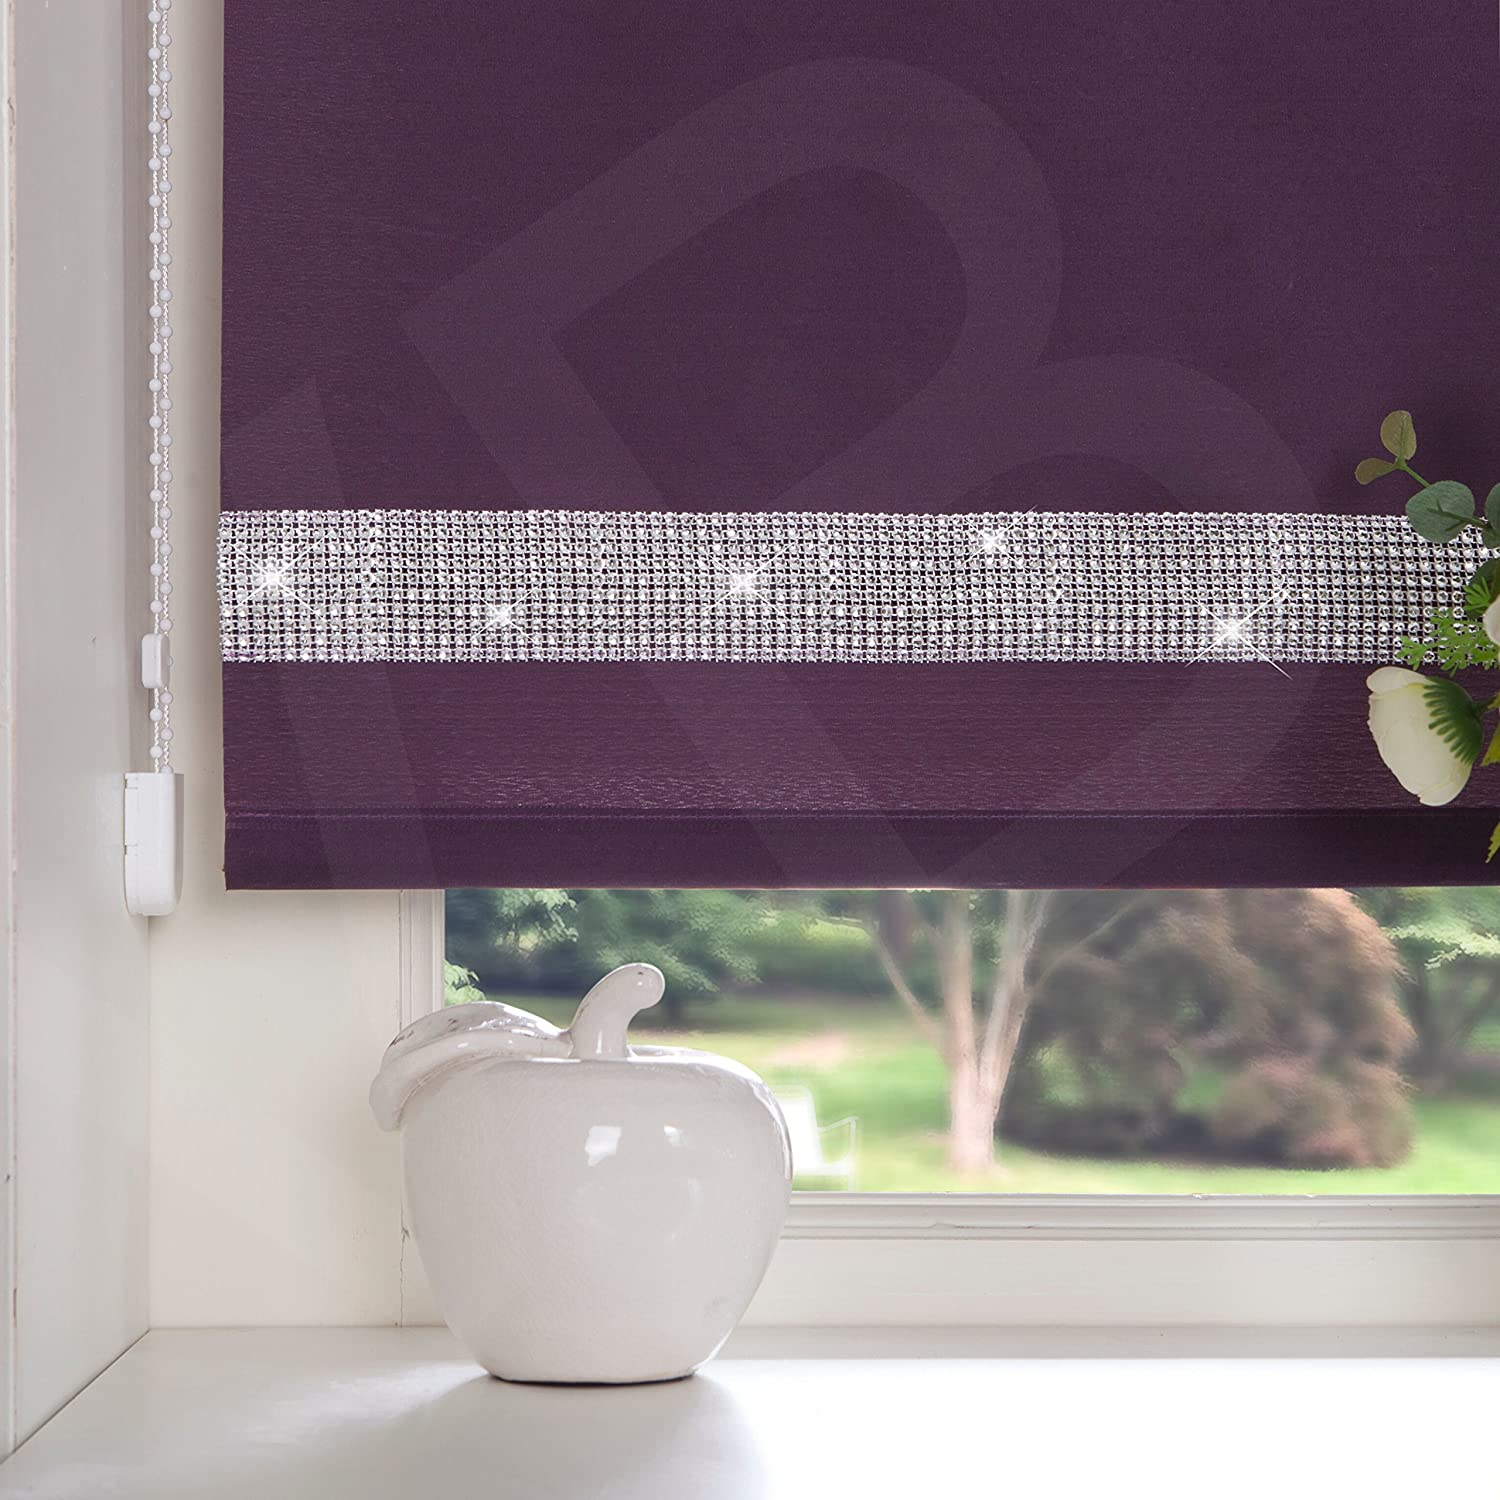 EASY To FIT DIAMOND DIAMANTE TRIM DECORATIVE BORDER STRAIGHT EDGE ROLLER BLINDS WINDOW BLIND AUBERGINE PURPLE 60cm x 160cm (23.6'' x 63'') Viceroybedding